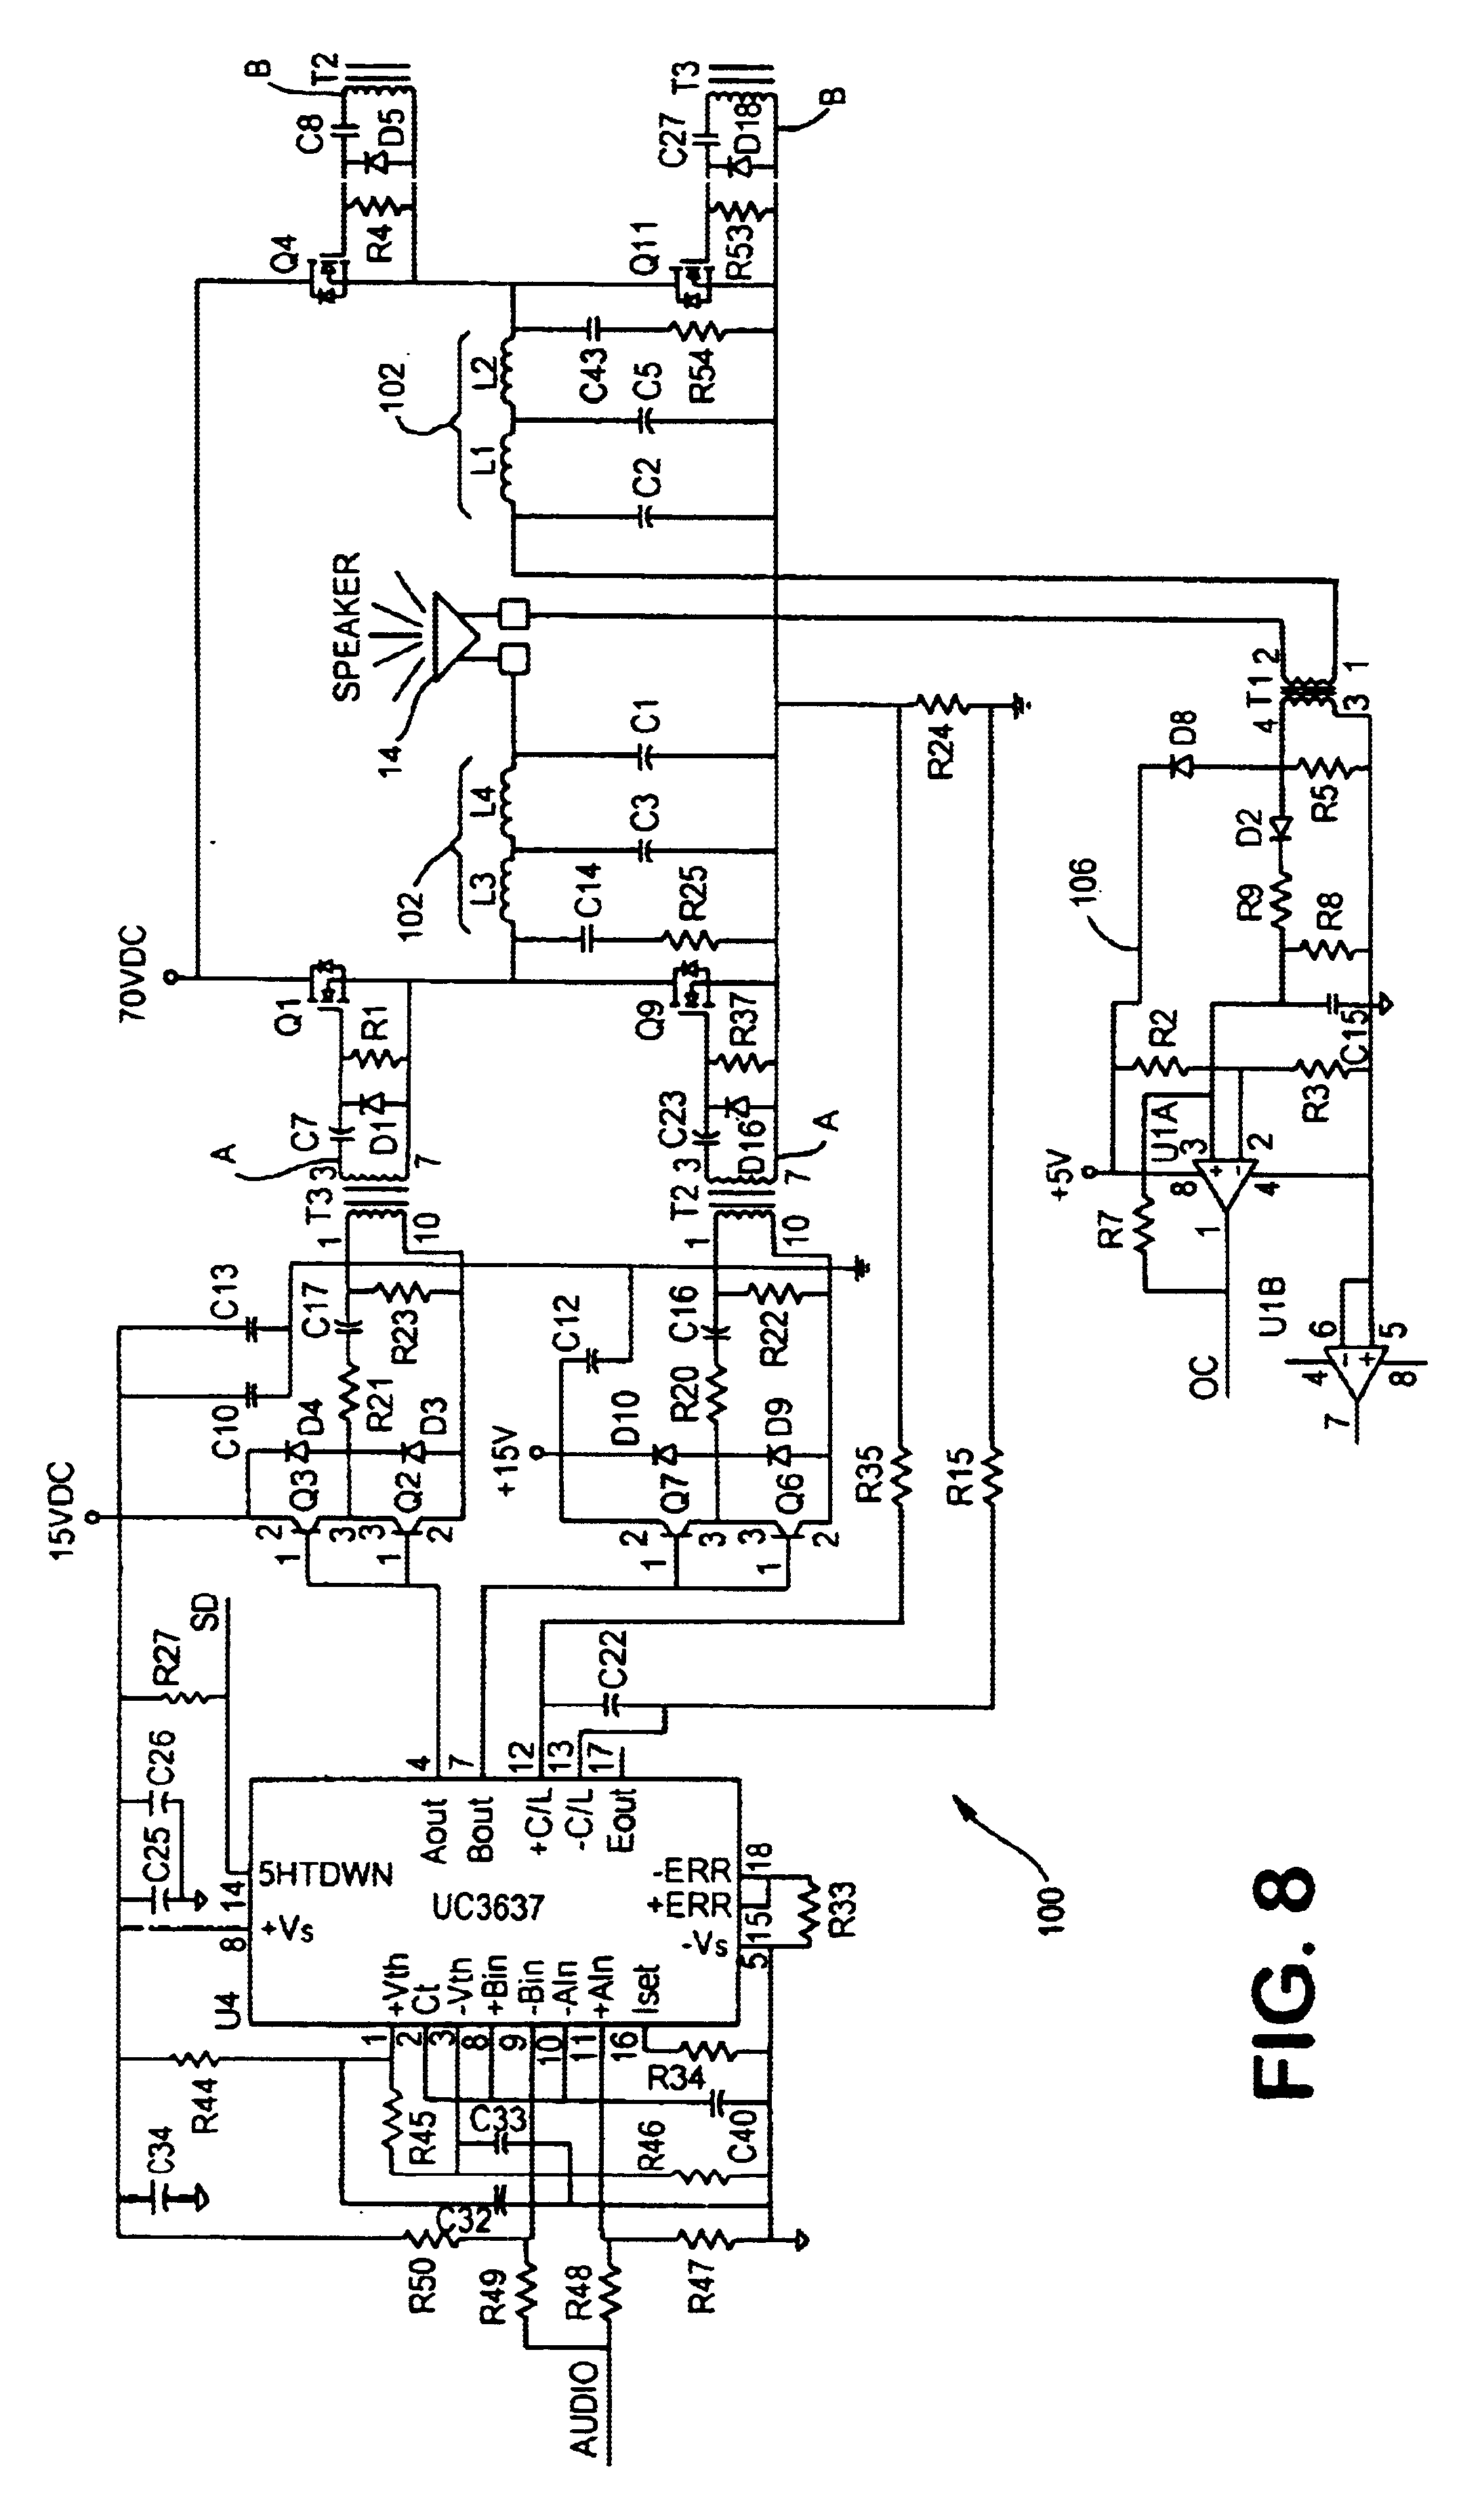 soundoff flashback wiring diagram